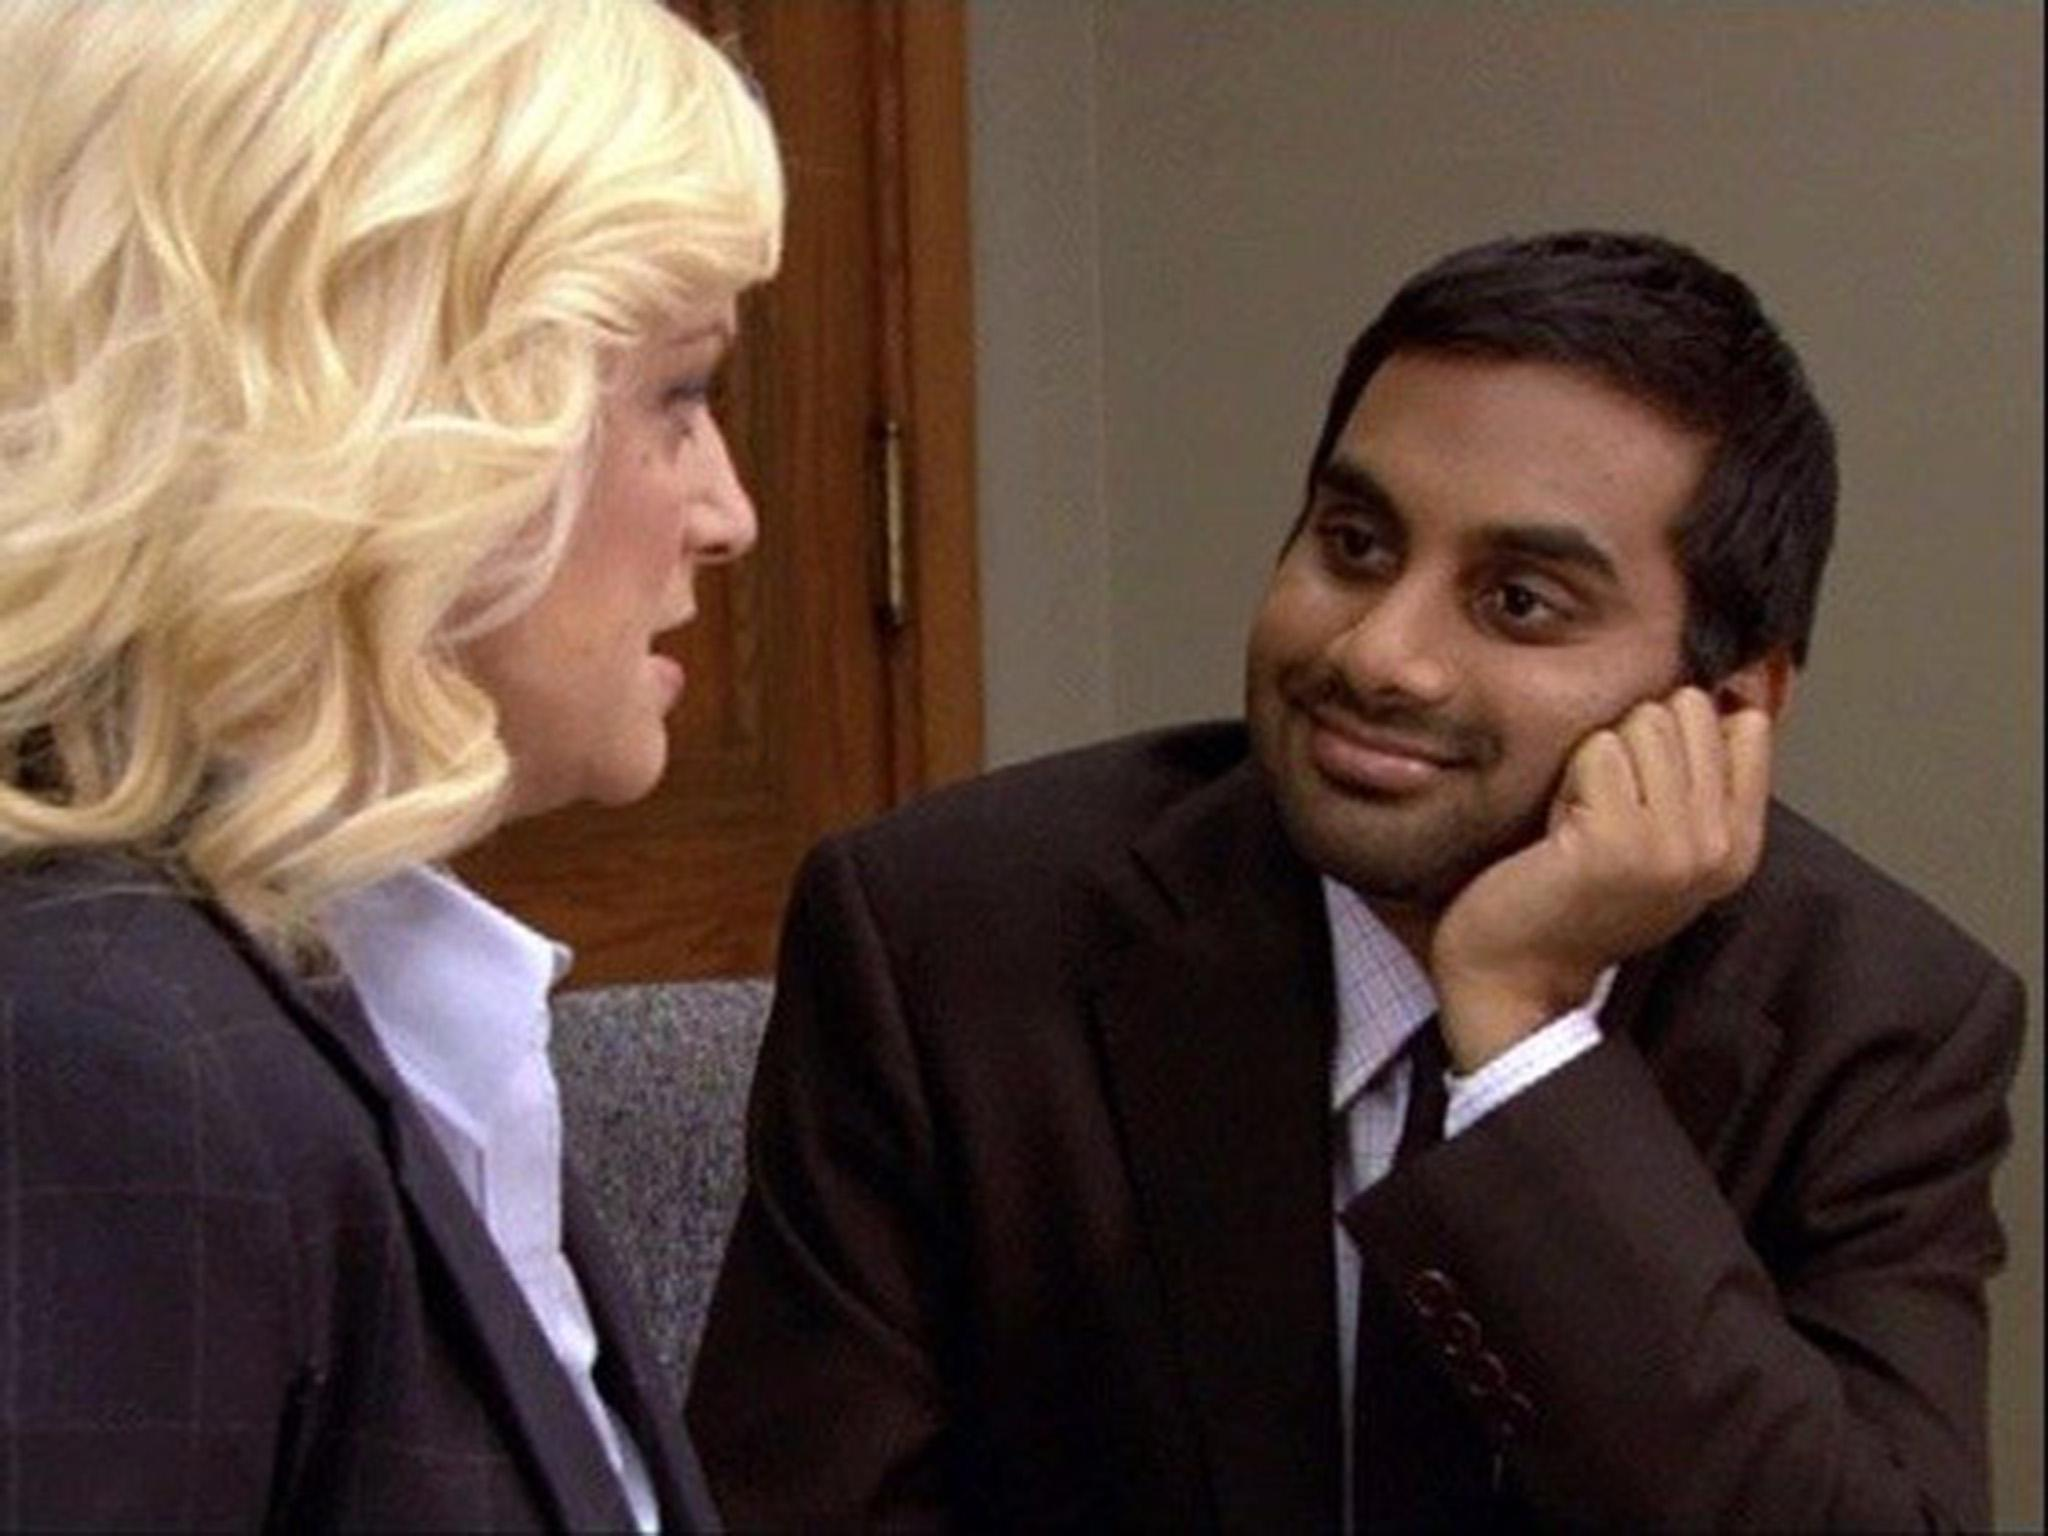 Aziz Ansari on Master of None, Parks and Recreation and